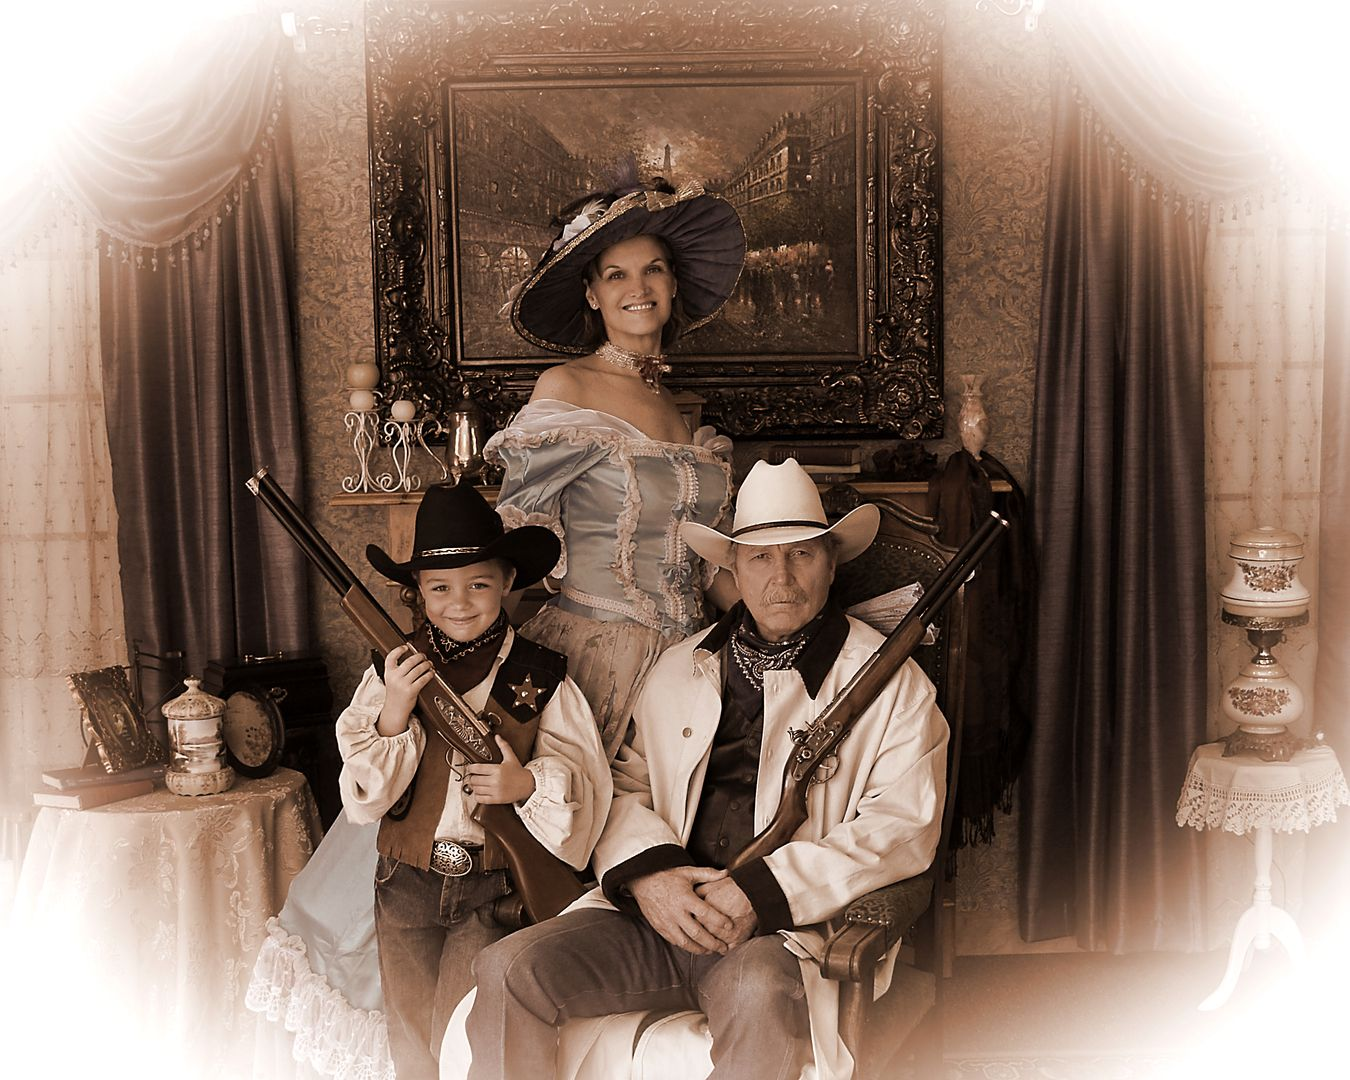 This Old Time Photo Reminds Me Of The One I Took With My Family Back In The Day We Were In Montana Visiting An Old Old Time Photos Old West